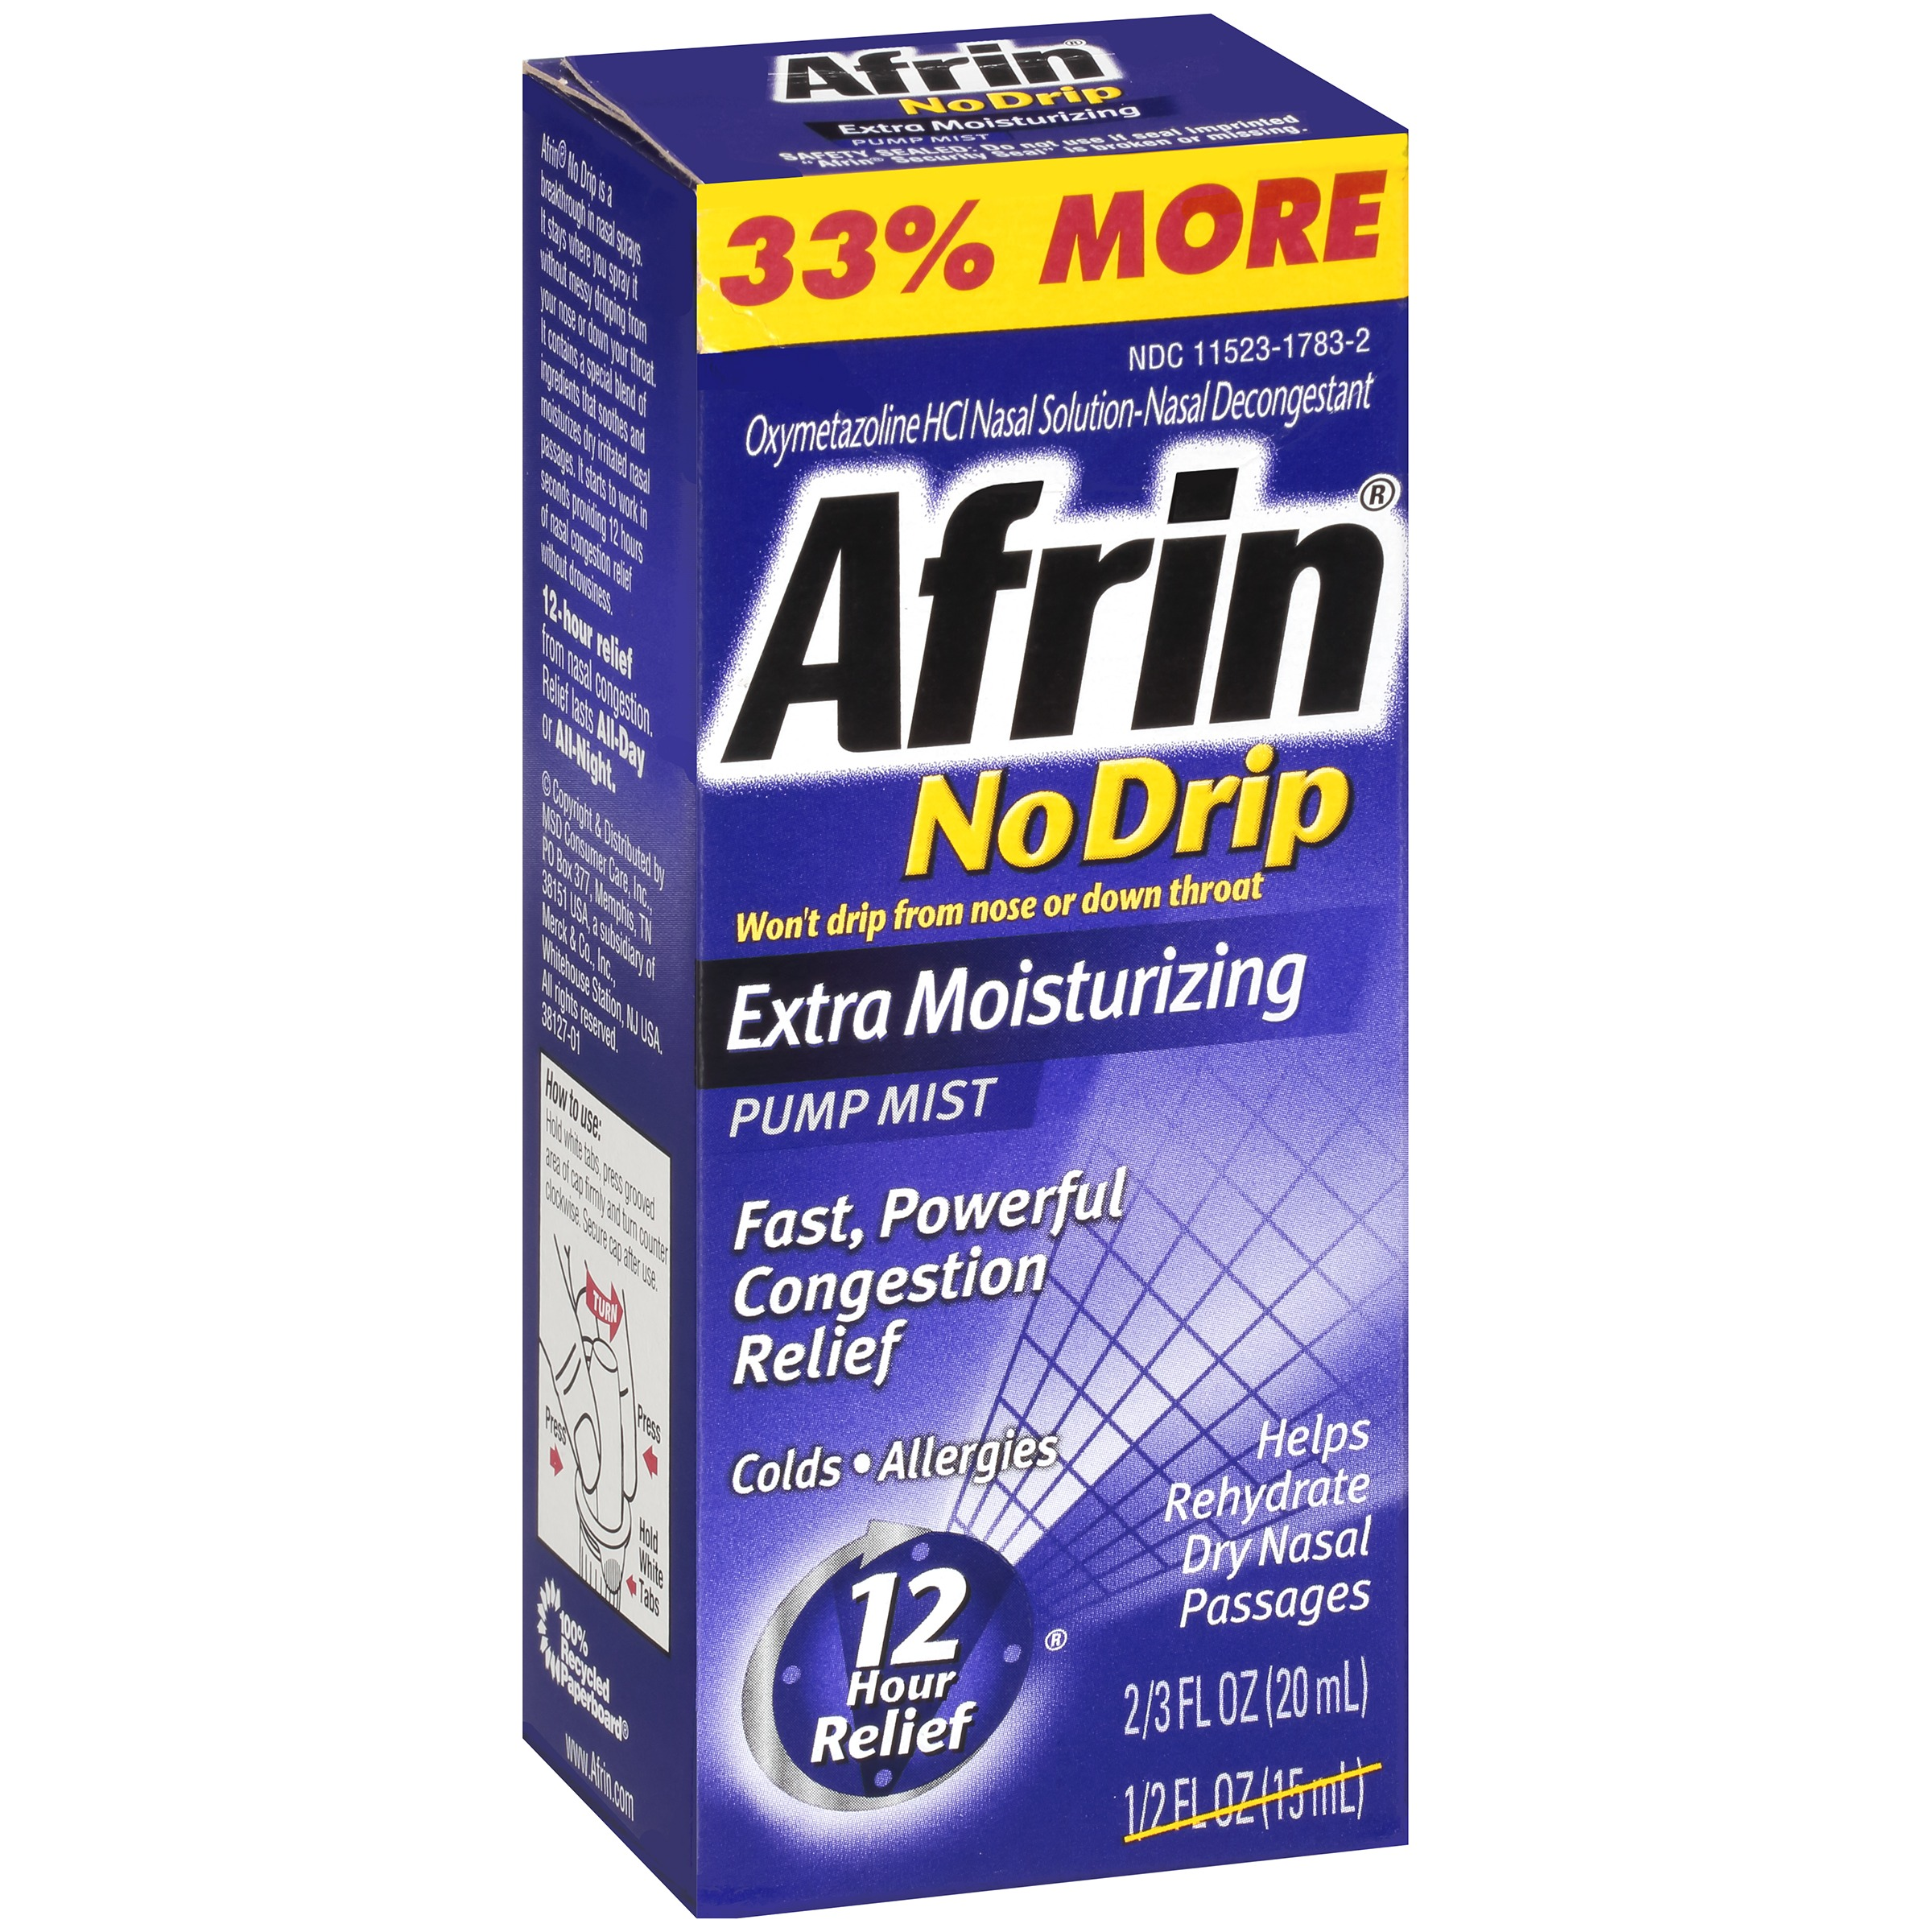 Image of Afrin ® No Drip Extra Moisturizing Nasal Decongestant Pump Mist 0.666 fl. oz. Box